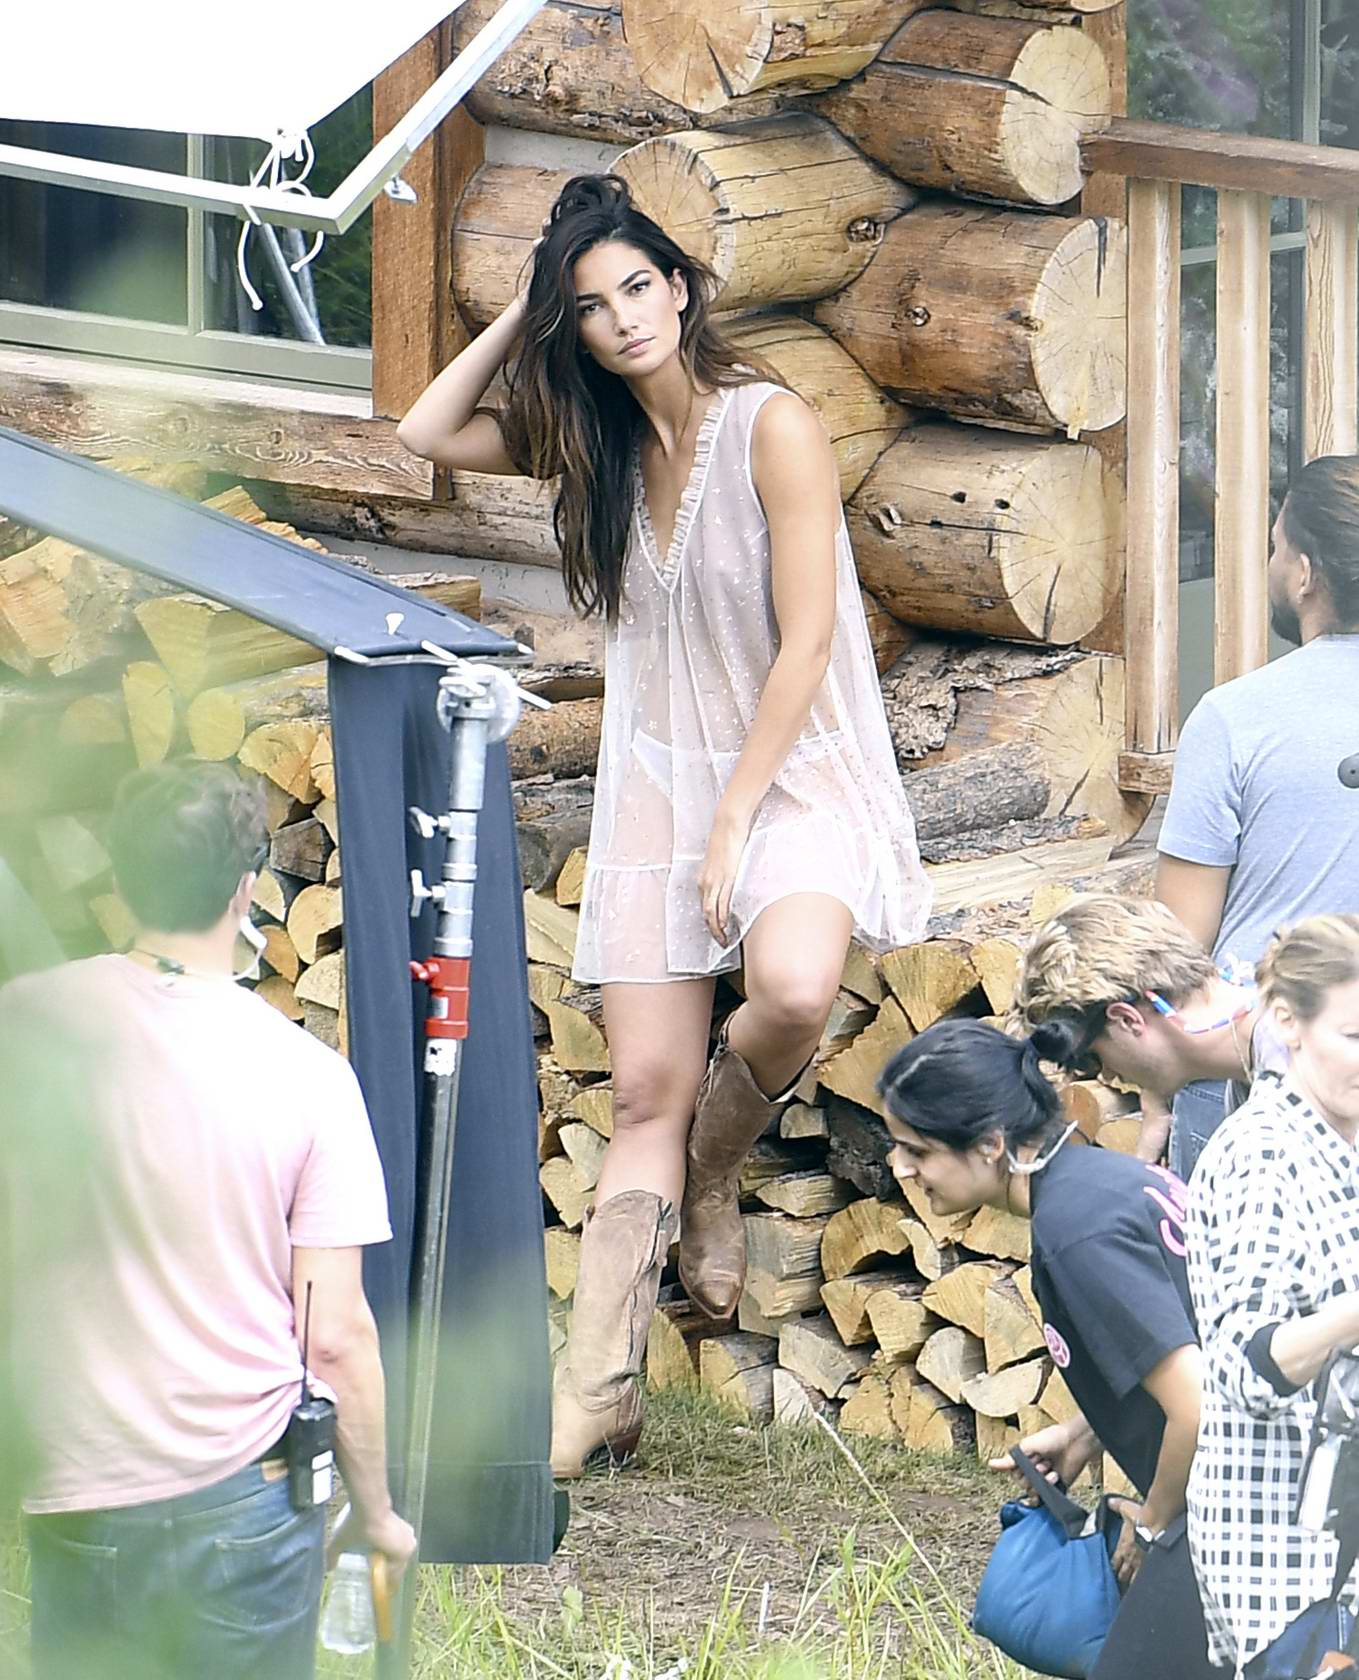 Lily Aldridge shooting for Victoria's Secrets upcoming holiday catalog in Aspen, Colorado